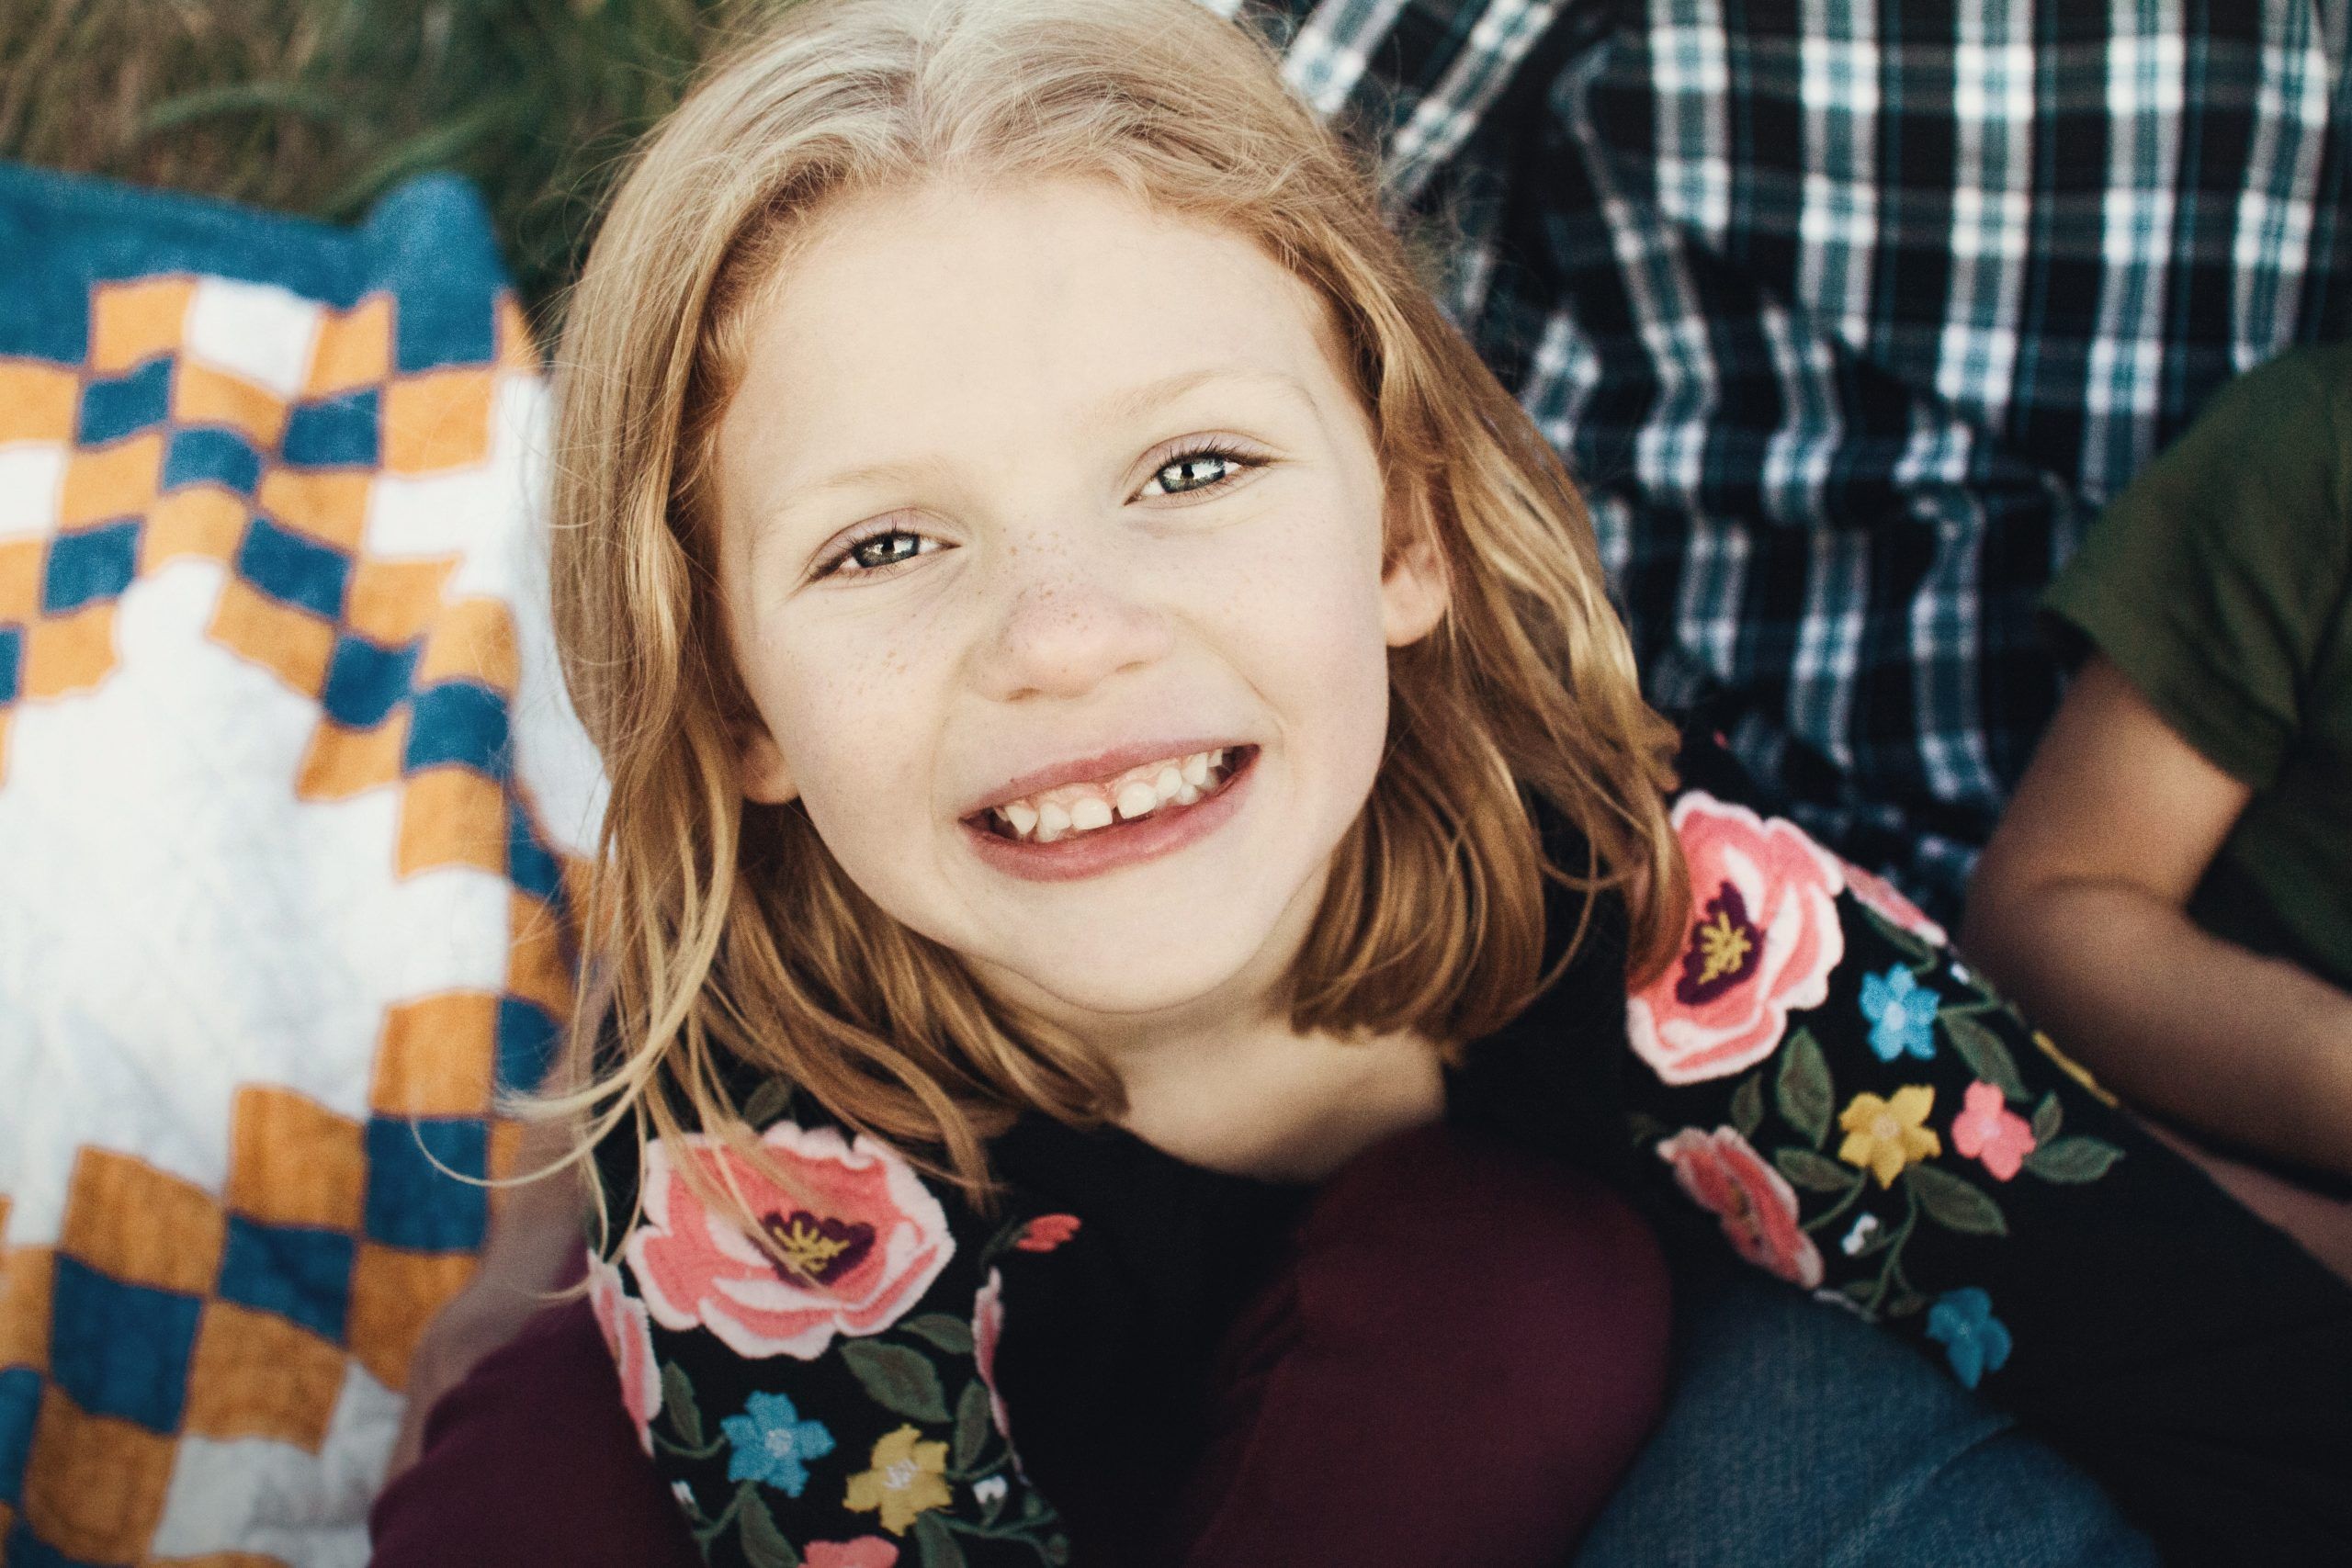 Young girl smiling in Campbell County